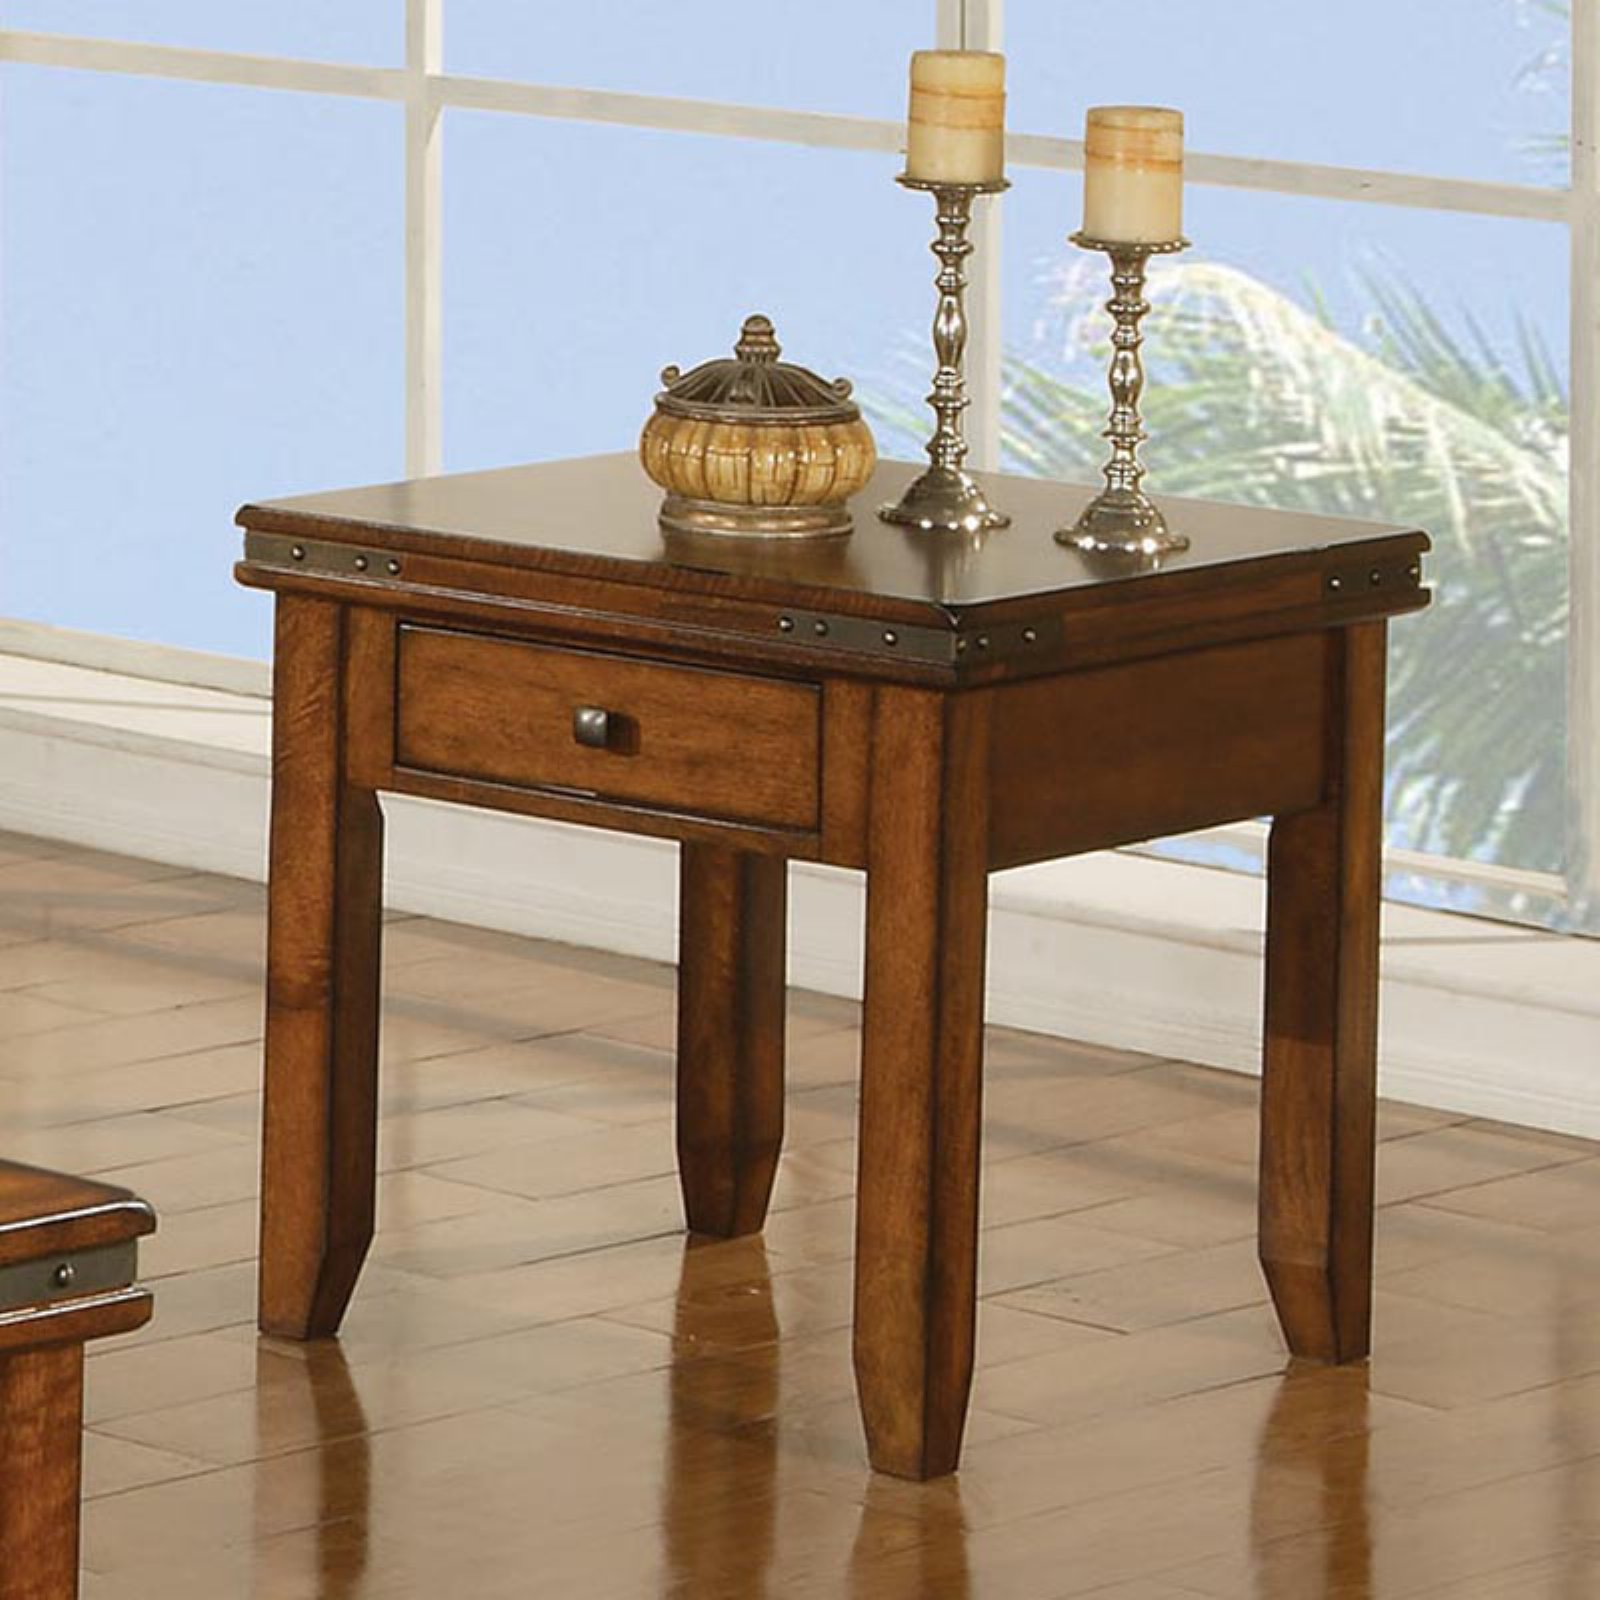 Mango 1 Drawer End Table - Mango